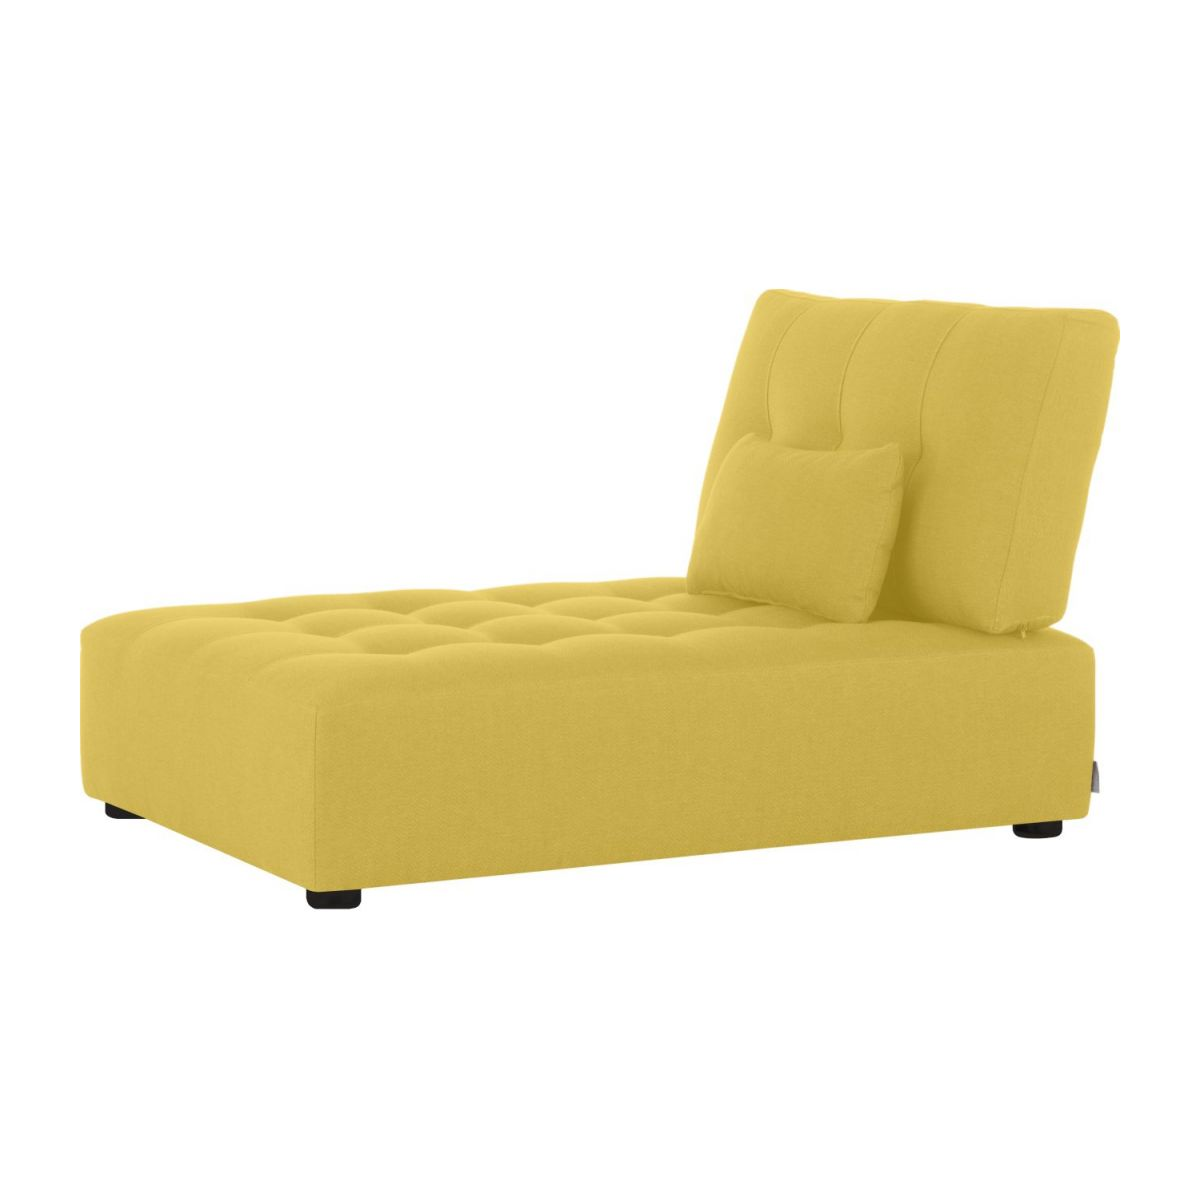 Chaiselongue de tela-amarillo mostaza n°1